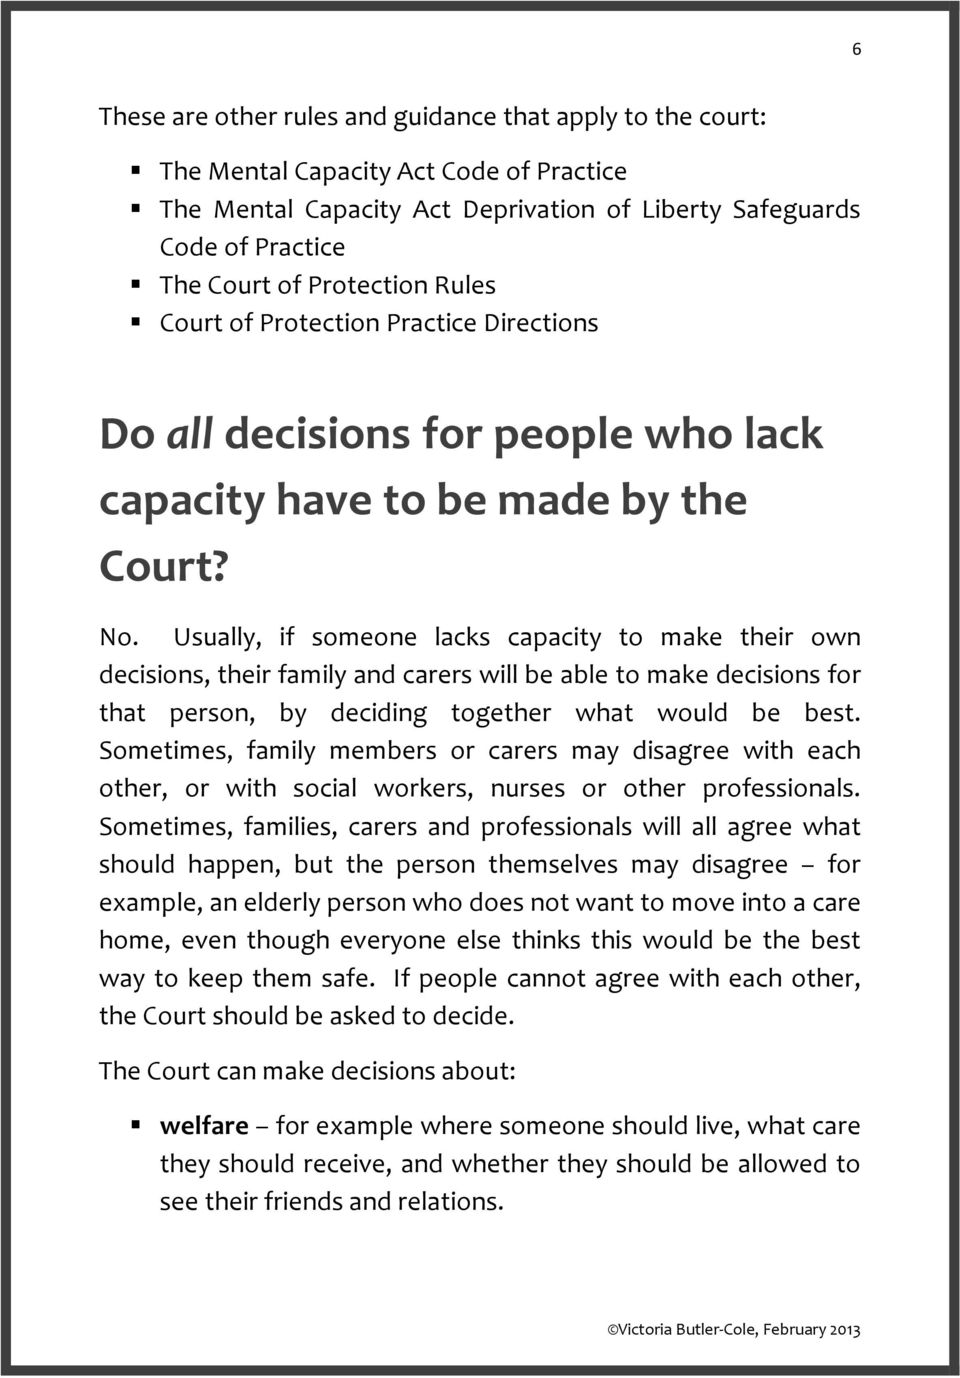 Usually, if someone lacks capacity to make their own decisions, their family and carers will be able to make decisions for that person, by deciding together what would be best.